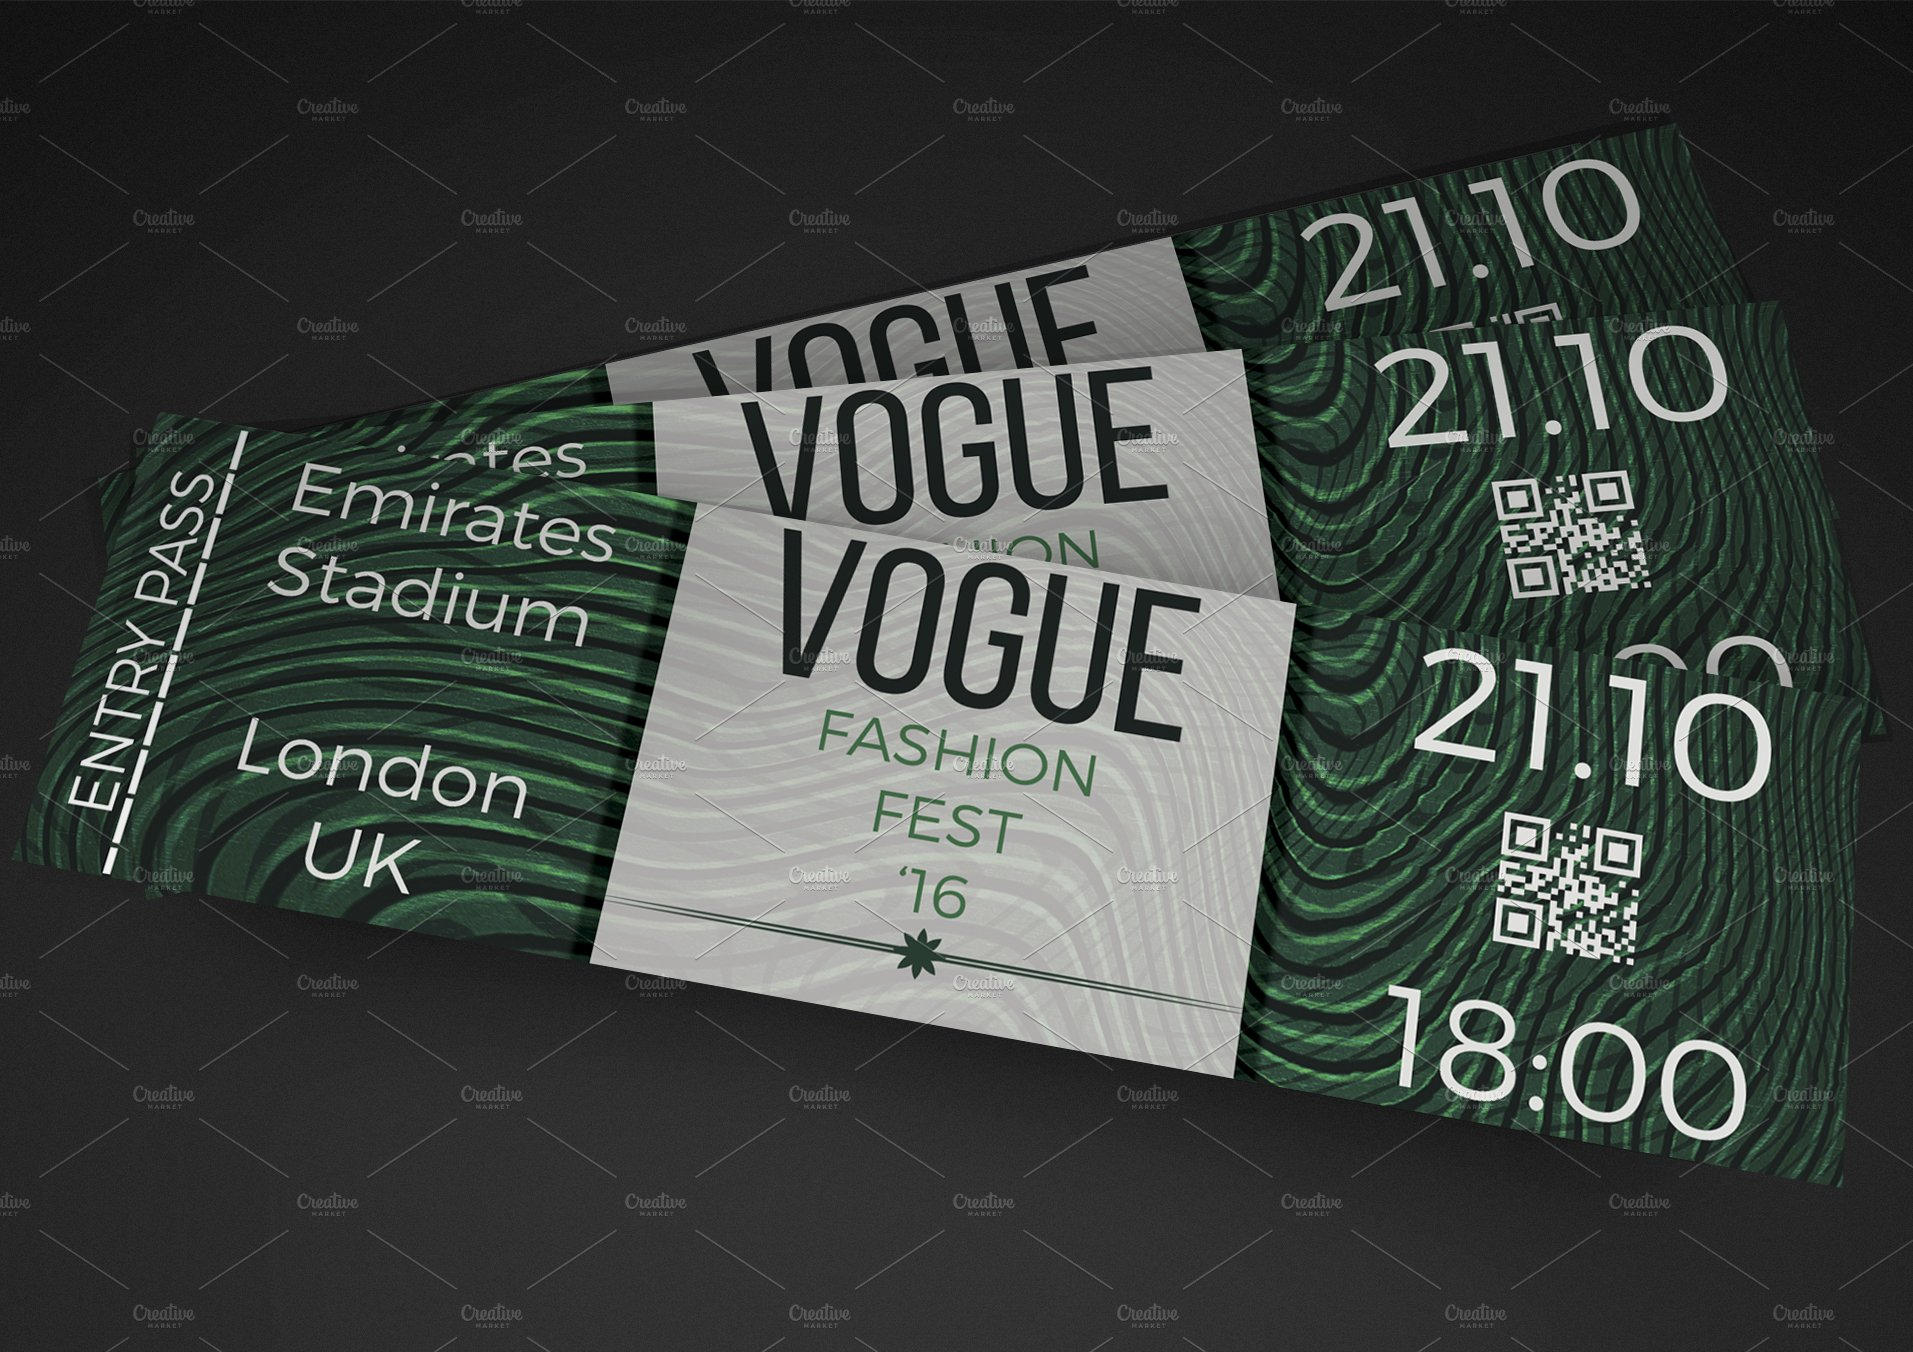 Fashion show event ticket invitation templates for Fashion show ticket template